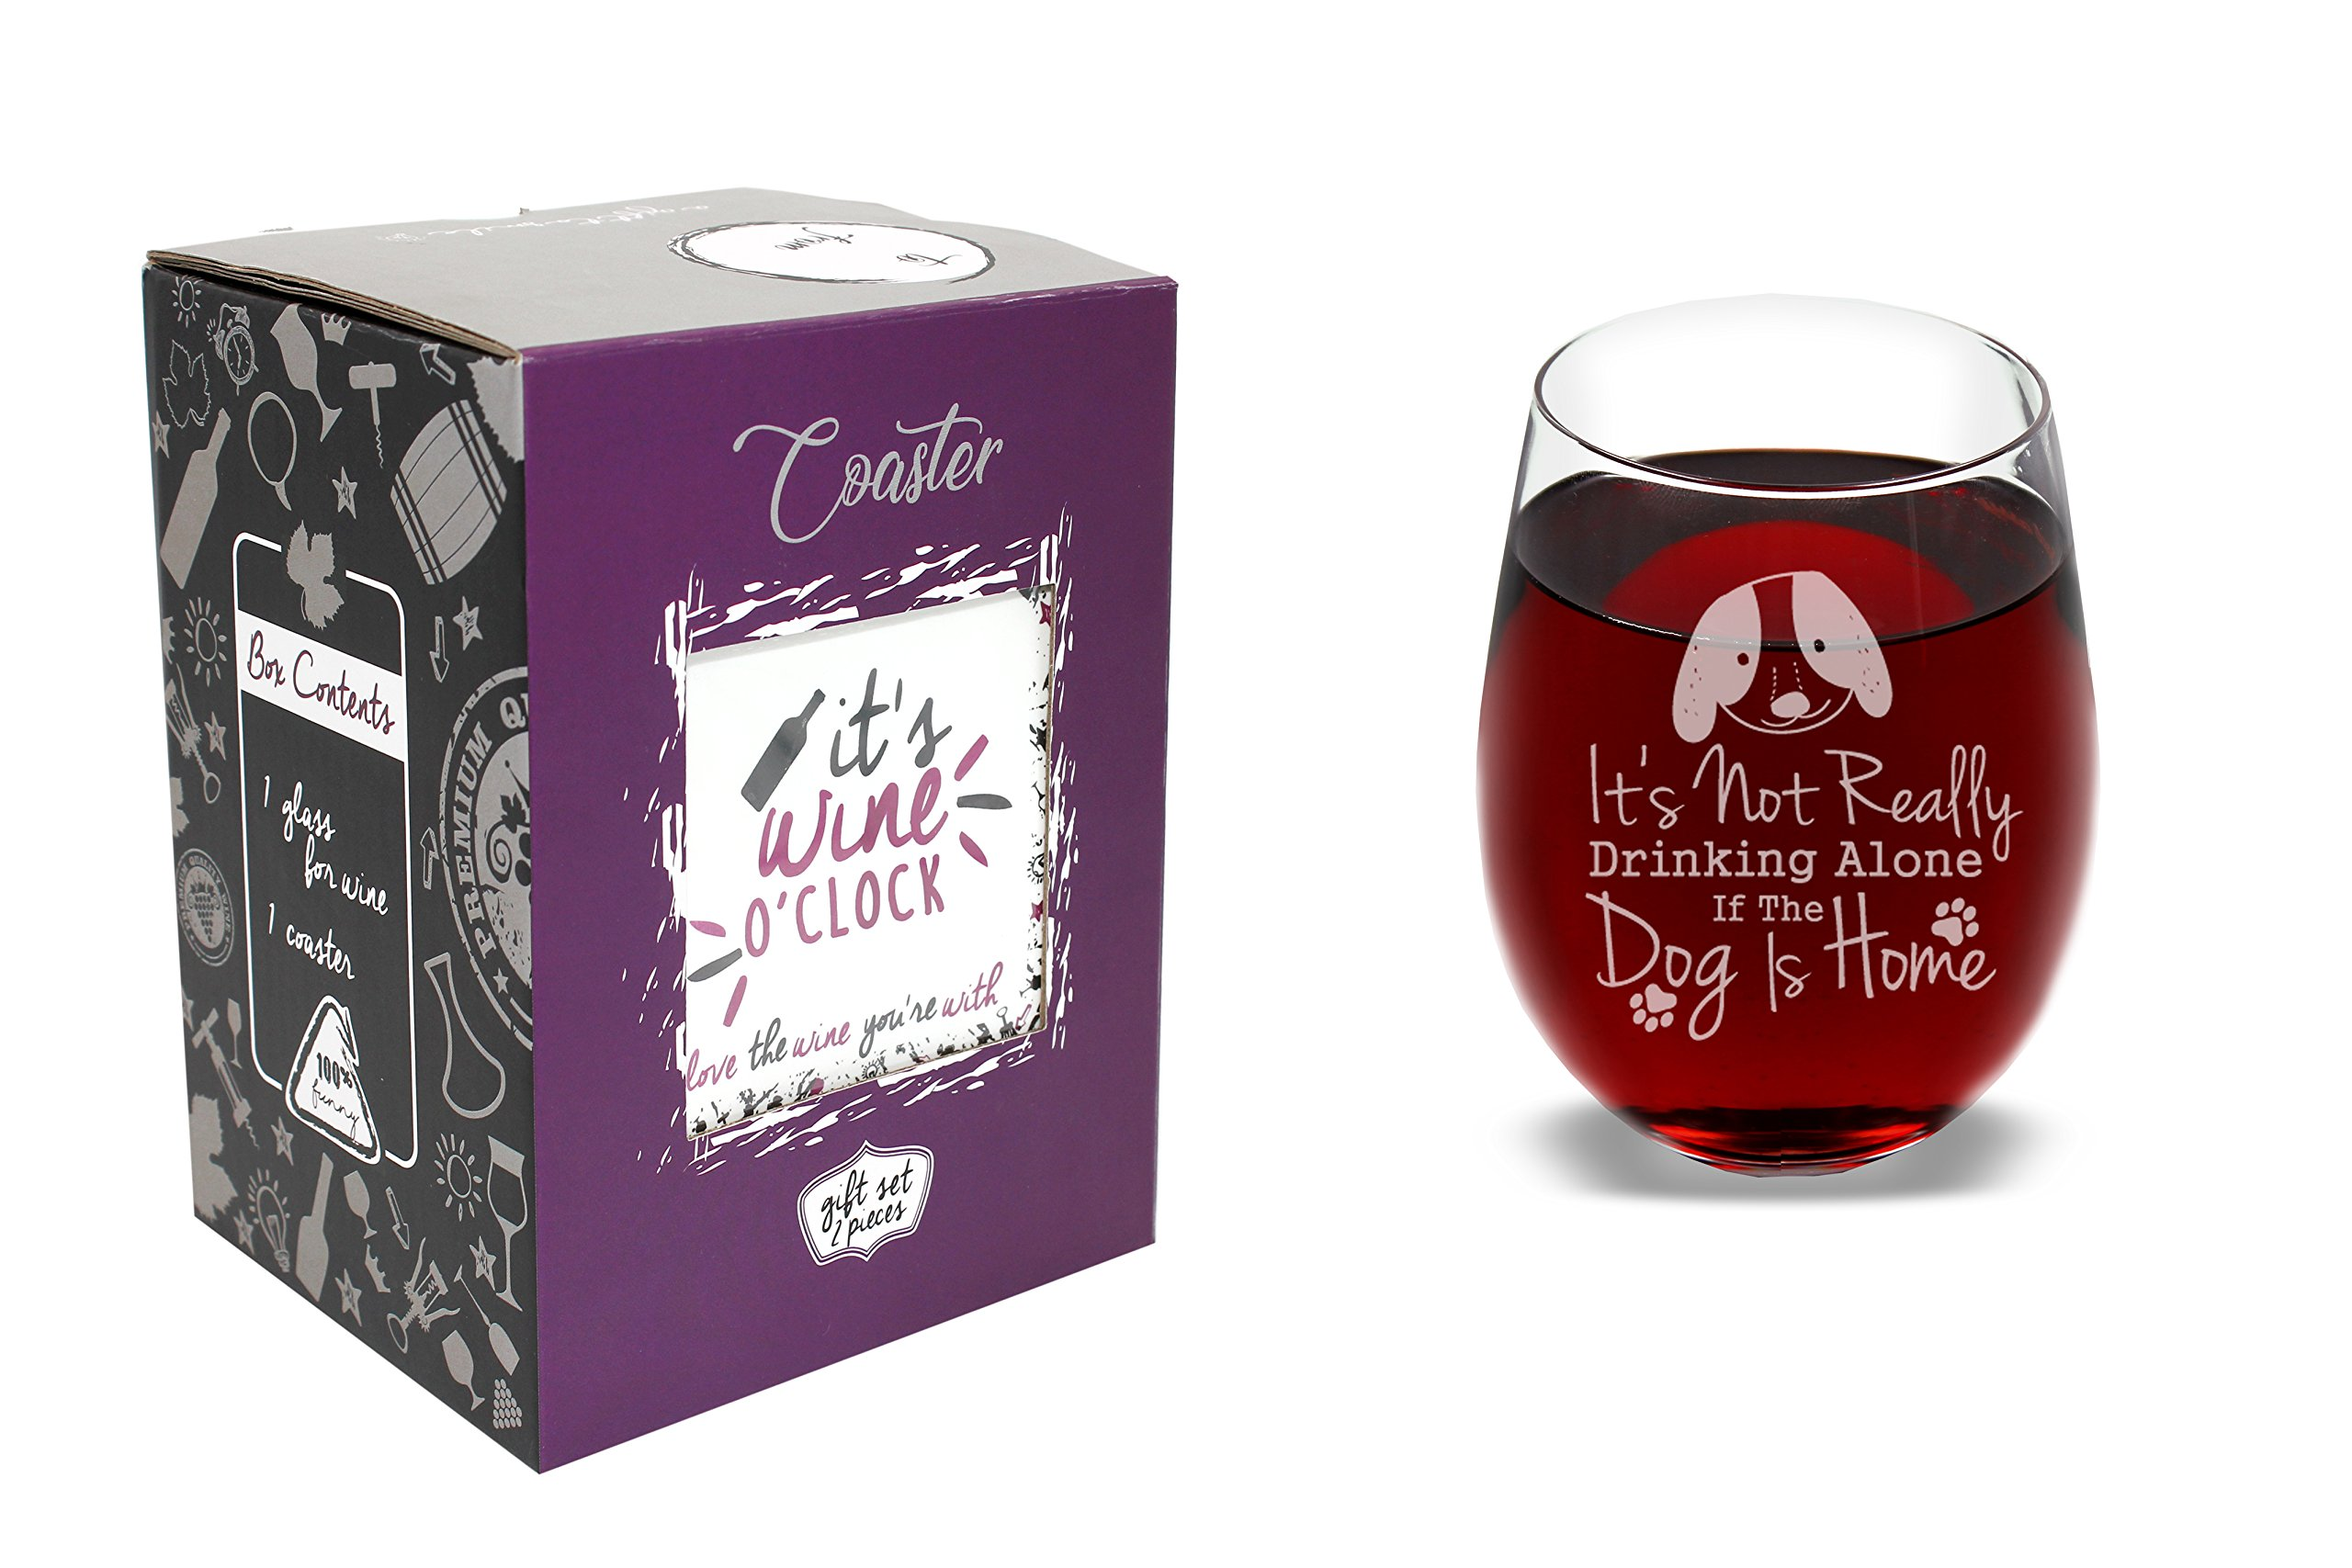 It's Not Really Drinking Alone If The Dog Is Home - Funny Novelty Wine Glass with Coaster - Great Present for Girlfriend Wife Mom on Birthday Mothers Day - 17 oz Stemless - With Gift Box